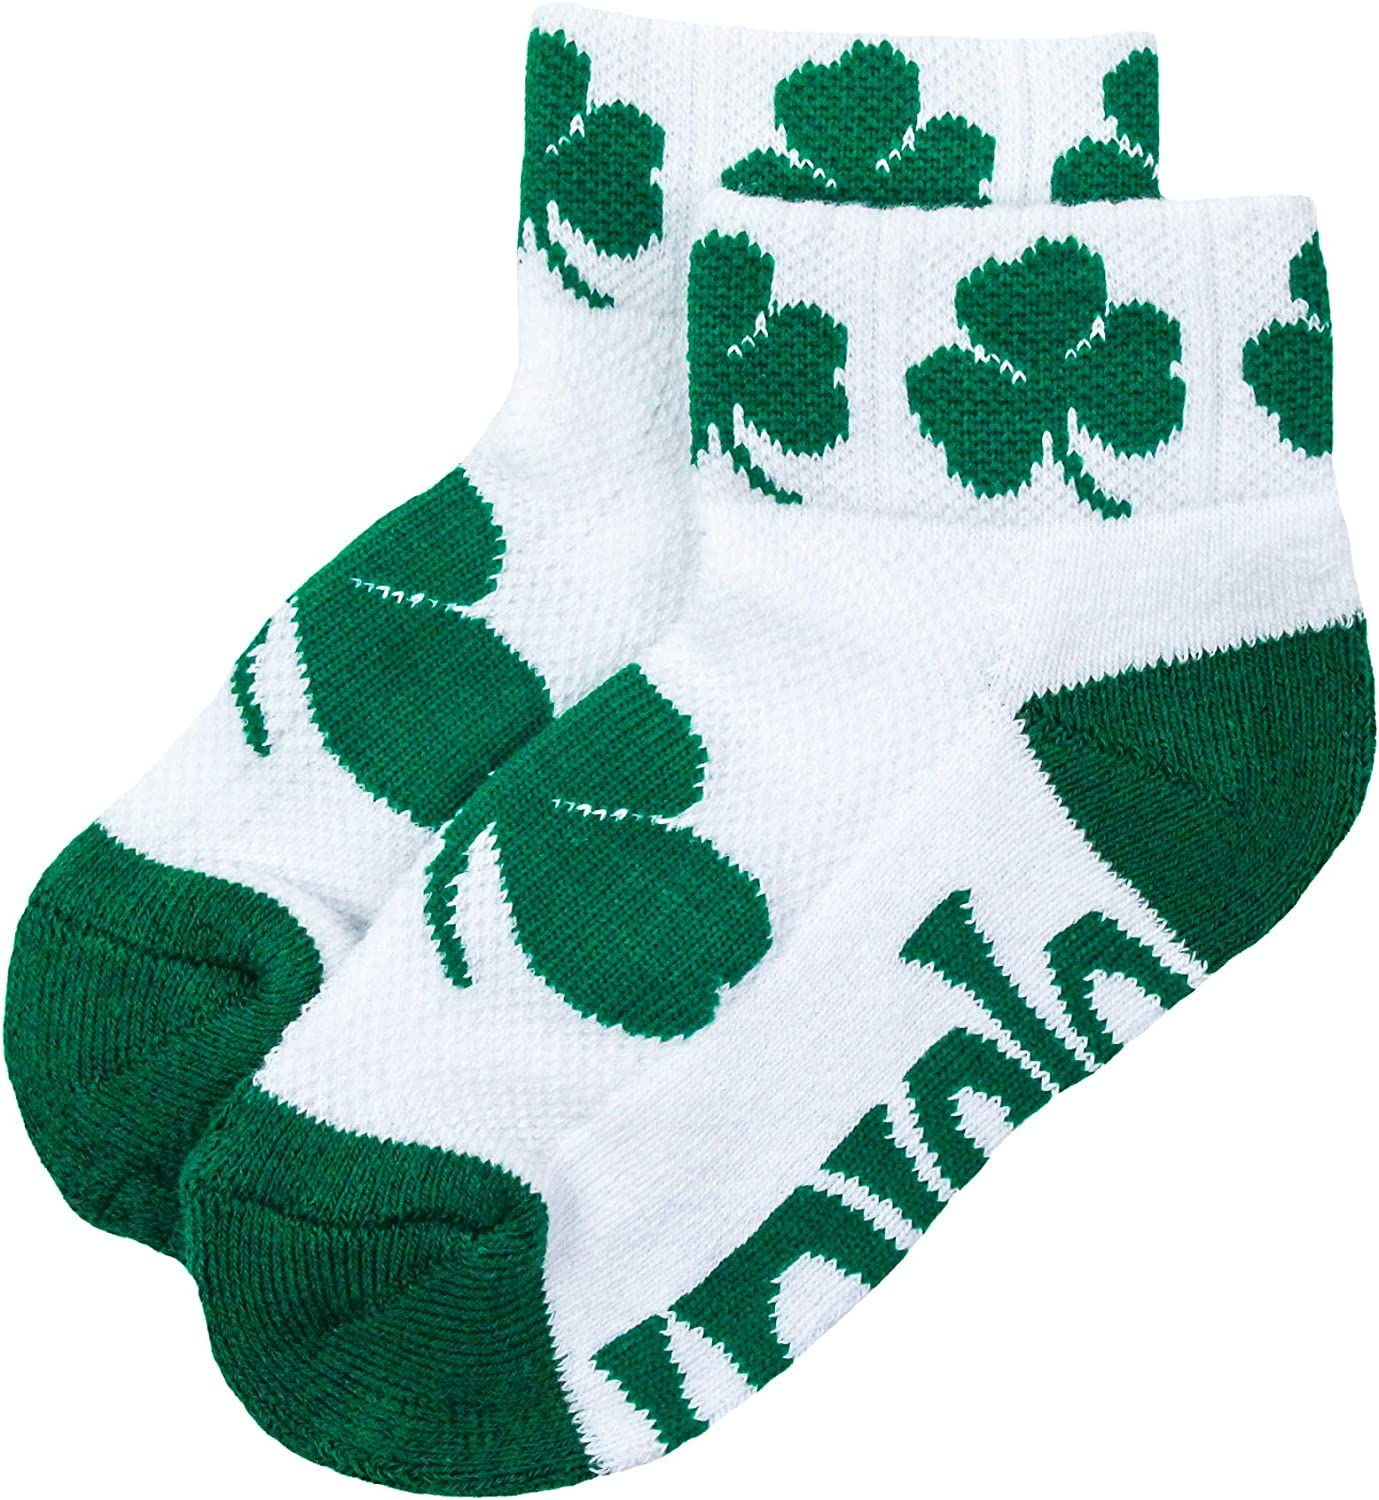 Max 2021new shipping free shipping 52% OFF NCAA Notre Dame Fighting Irish Youth 3-5 Socks QTR Years Green